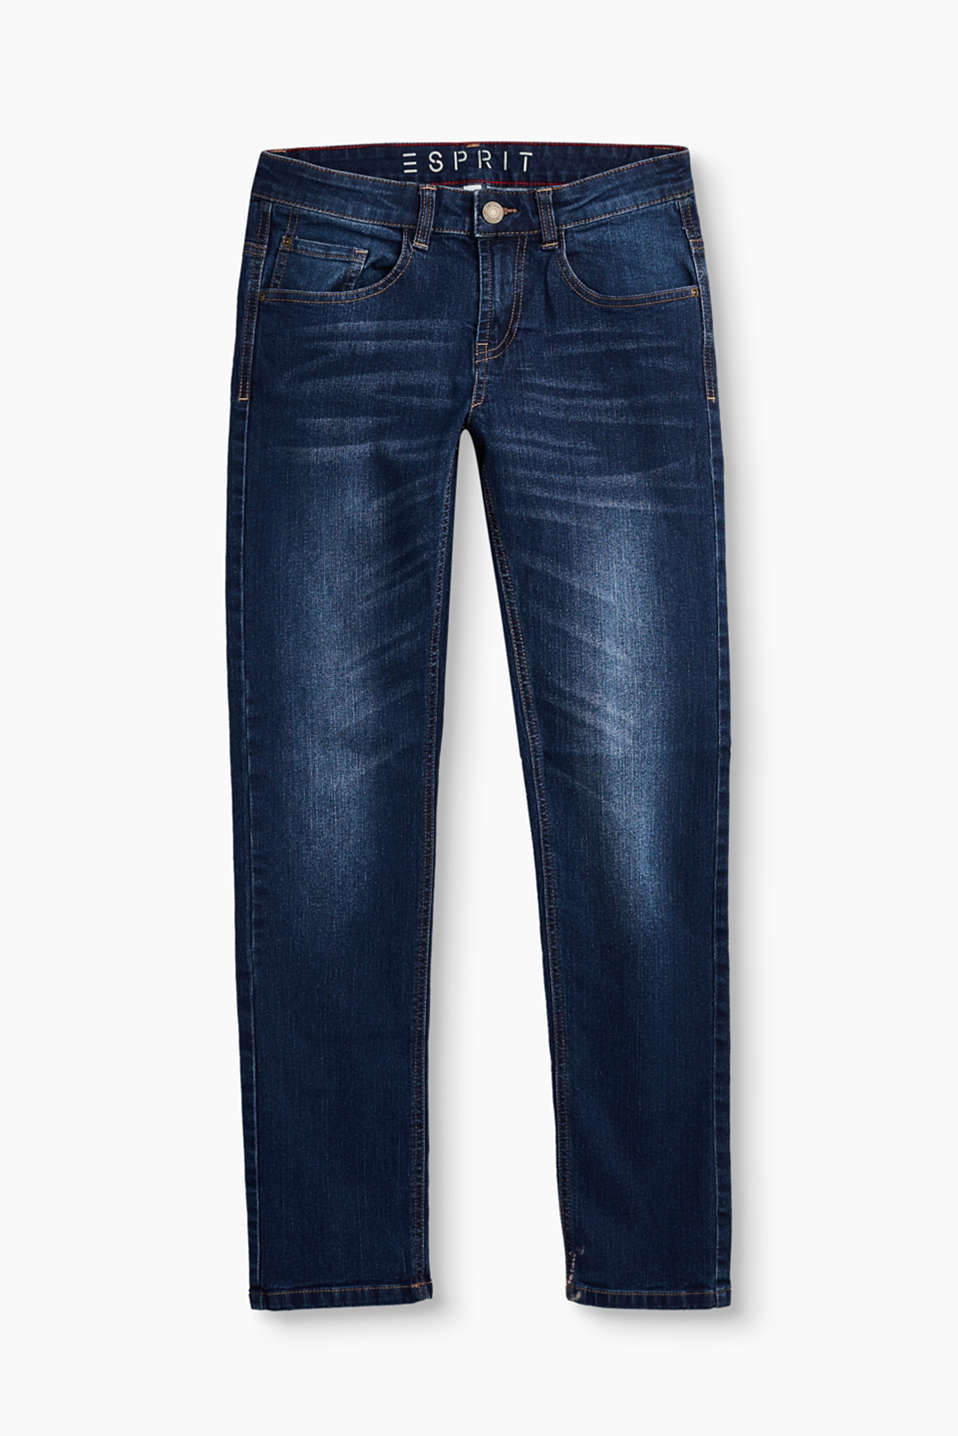 Esprit - Basic adjustable-waist stretch jeans